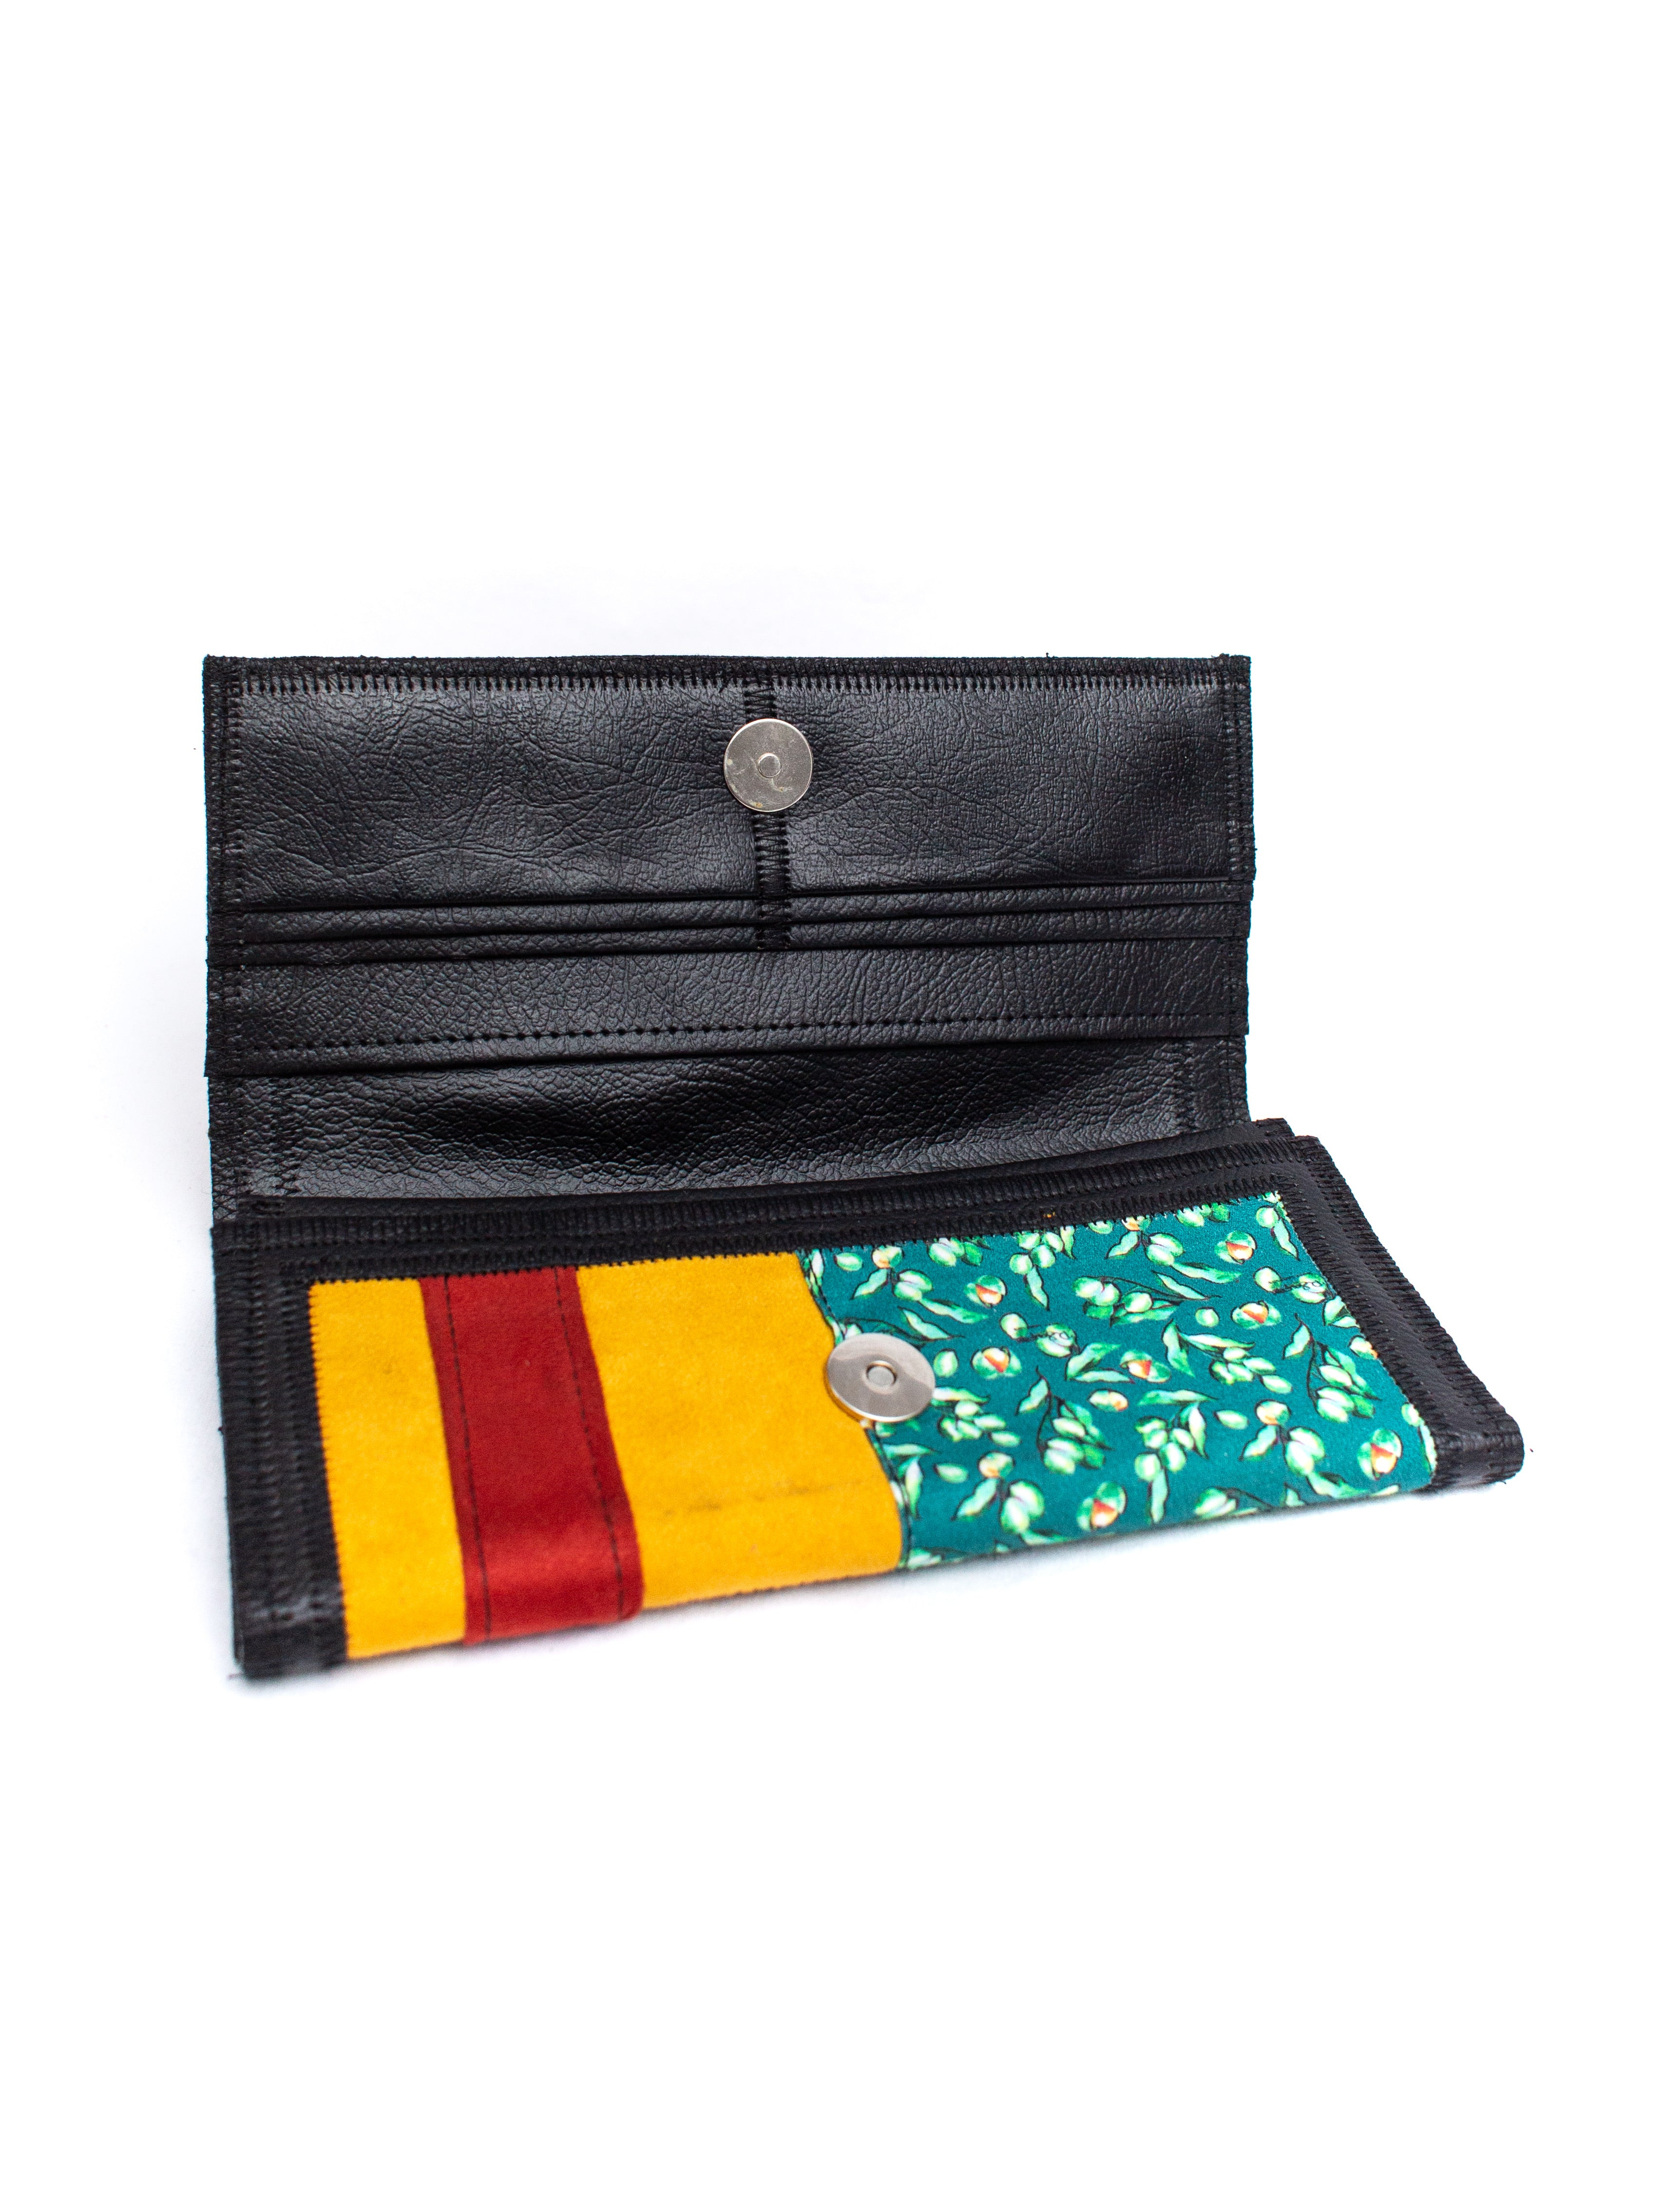 Guinep Leather Wallet